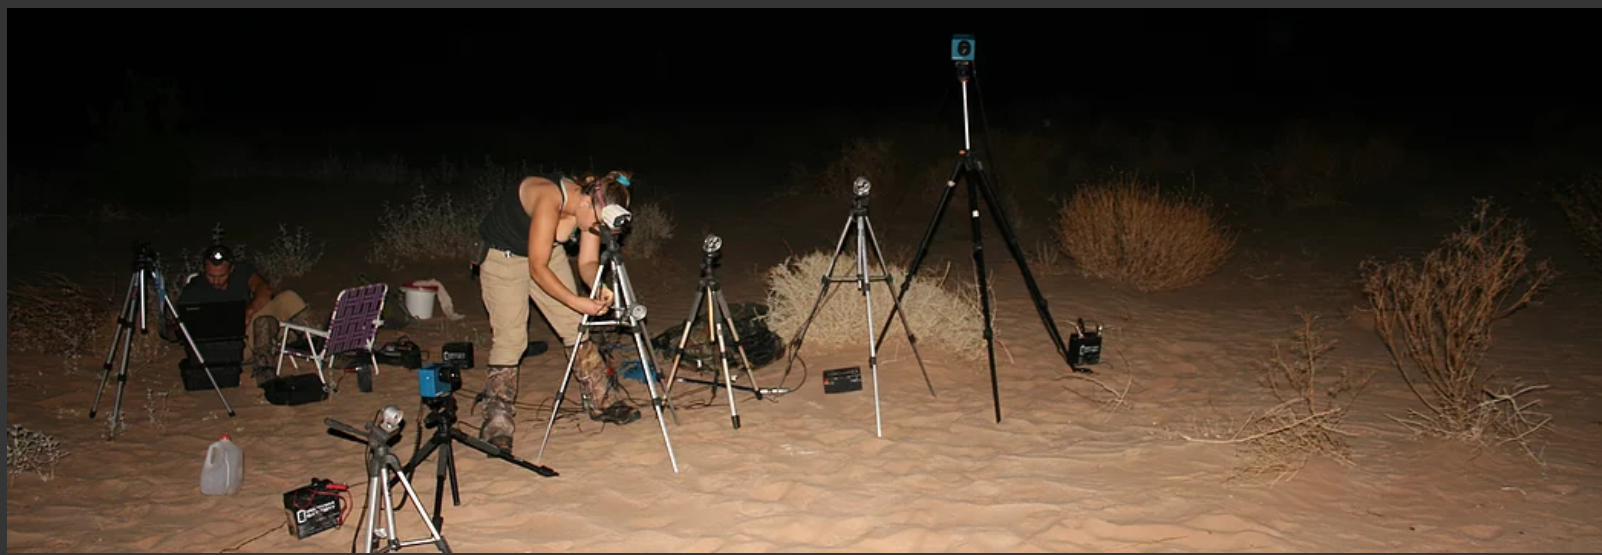 The filming setup with lights and cameras at night. Recording ambush predators such as rattlesnakes requires patience, assisted by miniature radio-tags, high-speed cameras, and infrared lights that are invisible to both the snakes and the kangaroo rats.